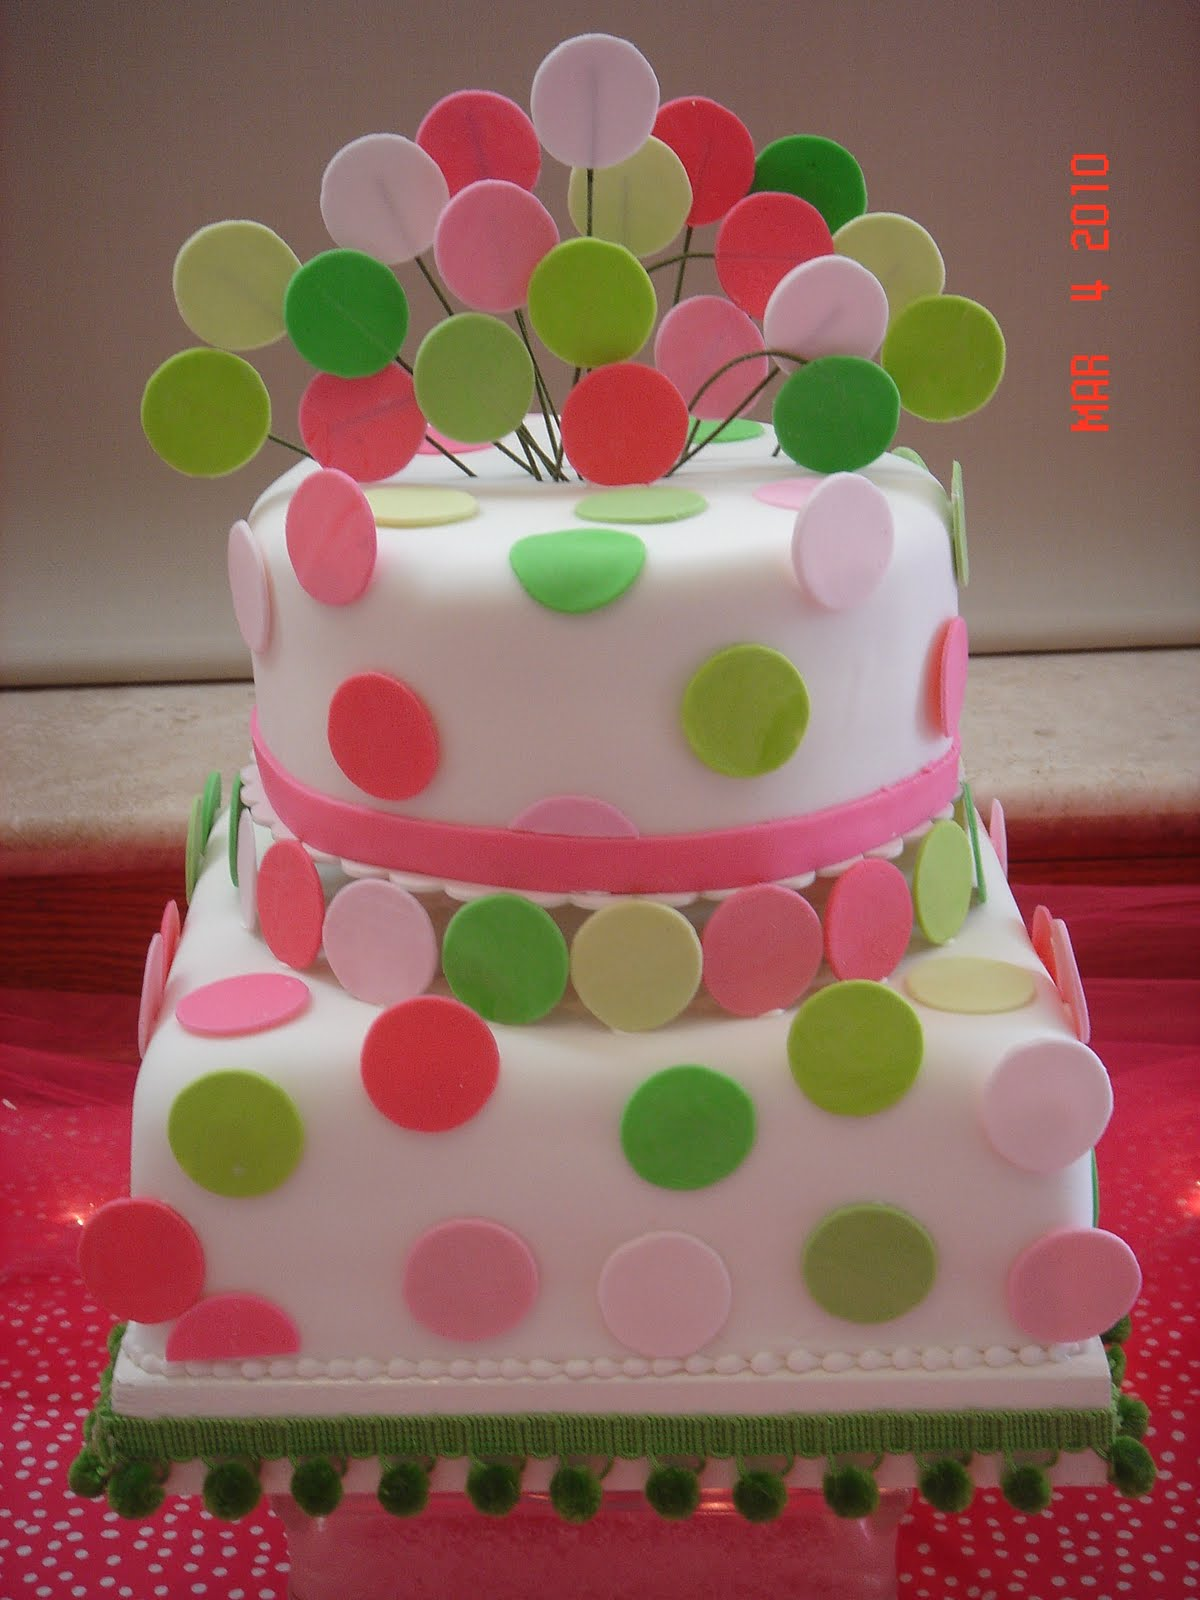 Pin Tortas De Mi Peque O Pony Fiesta Infantil Ta Pcs Do Cake On